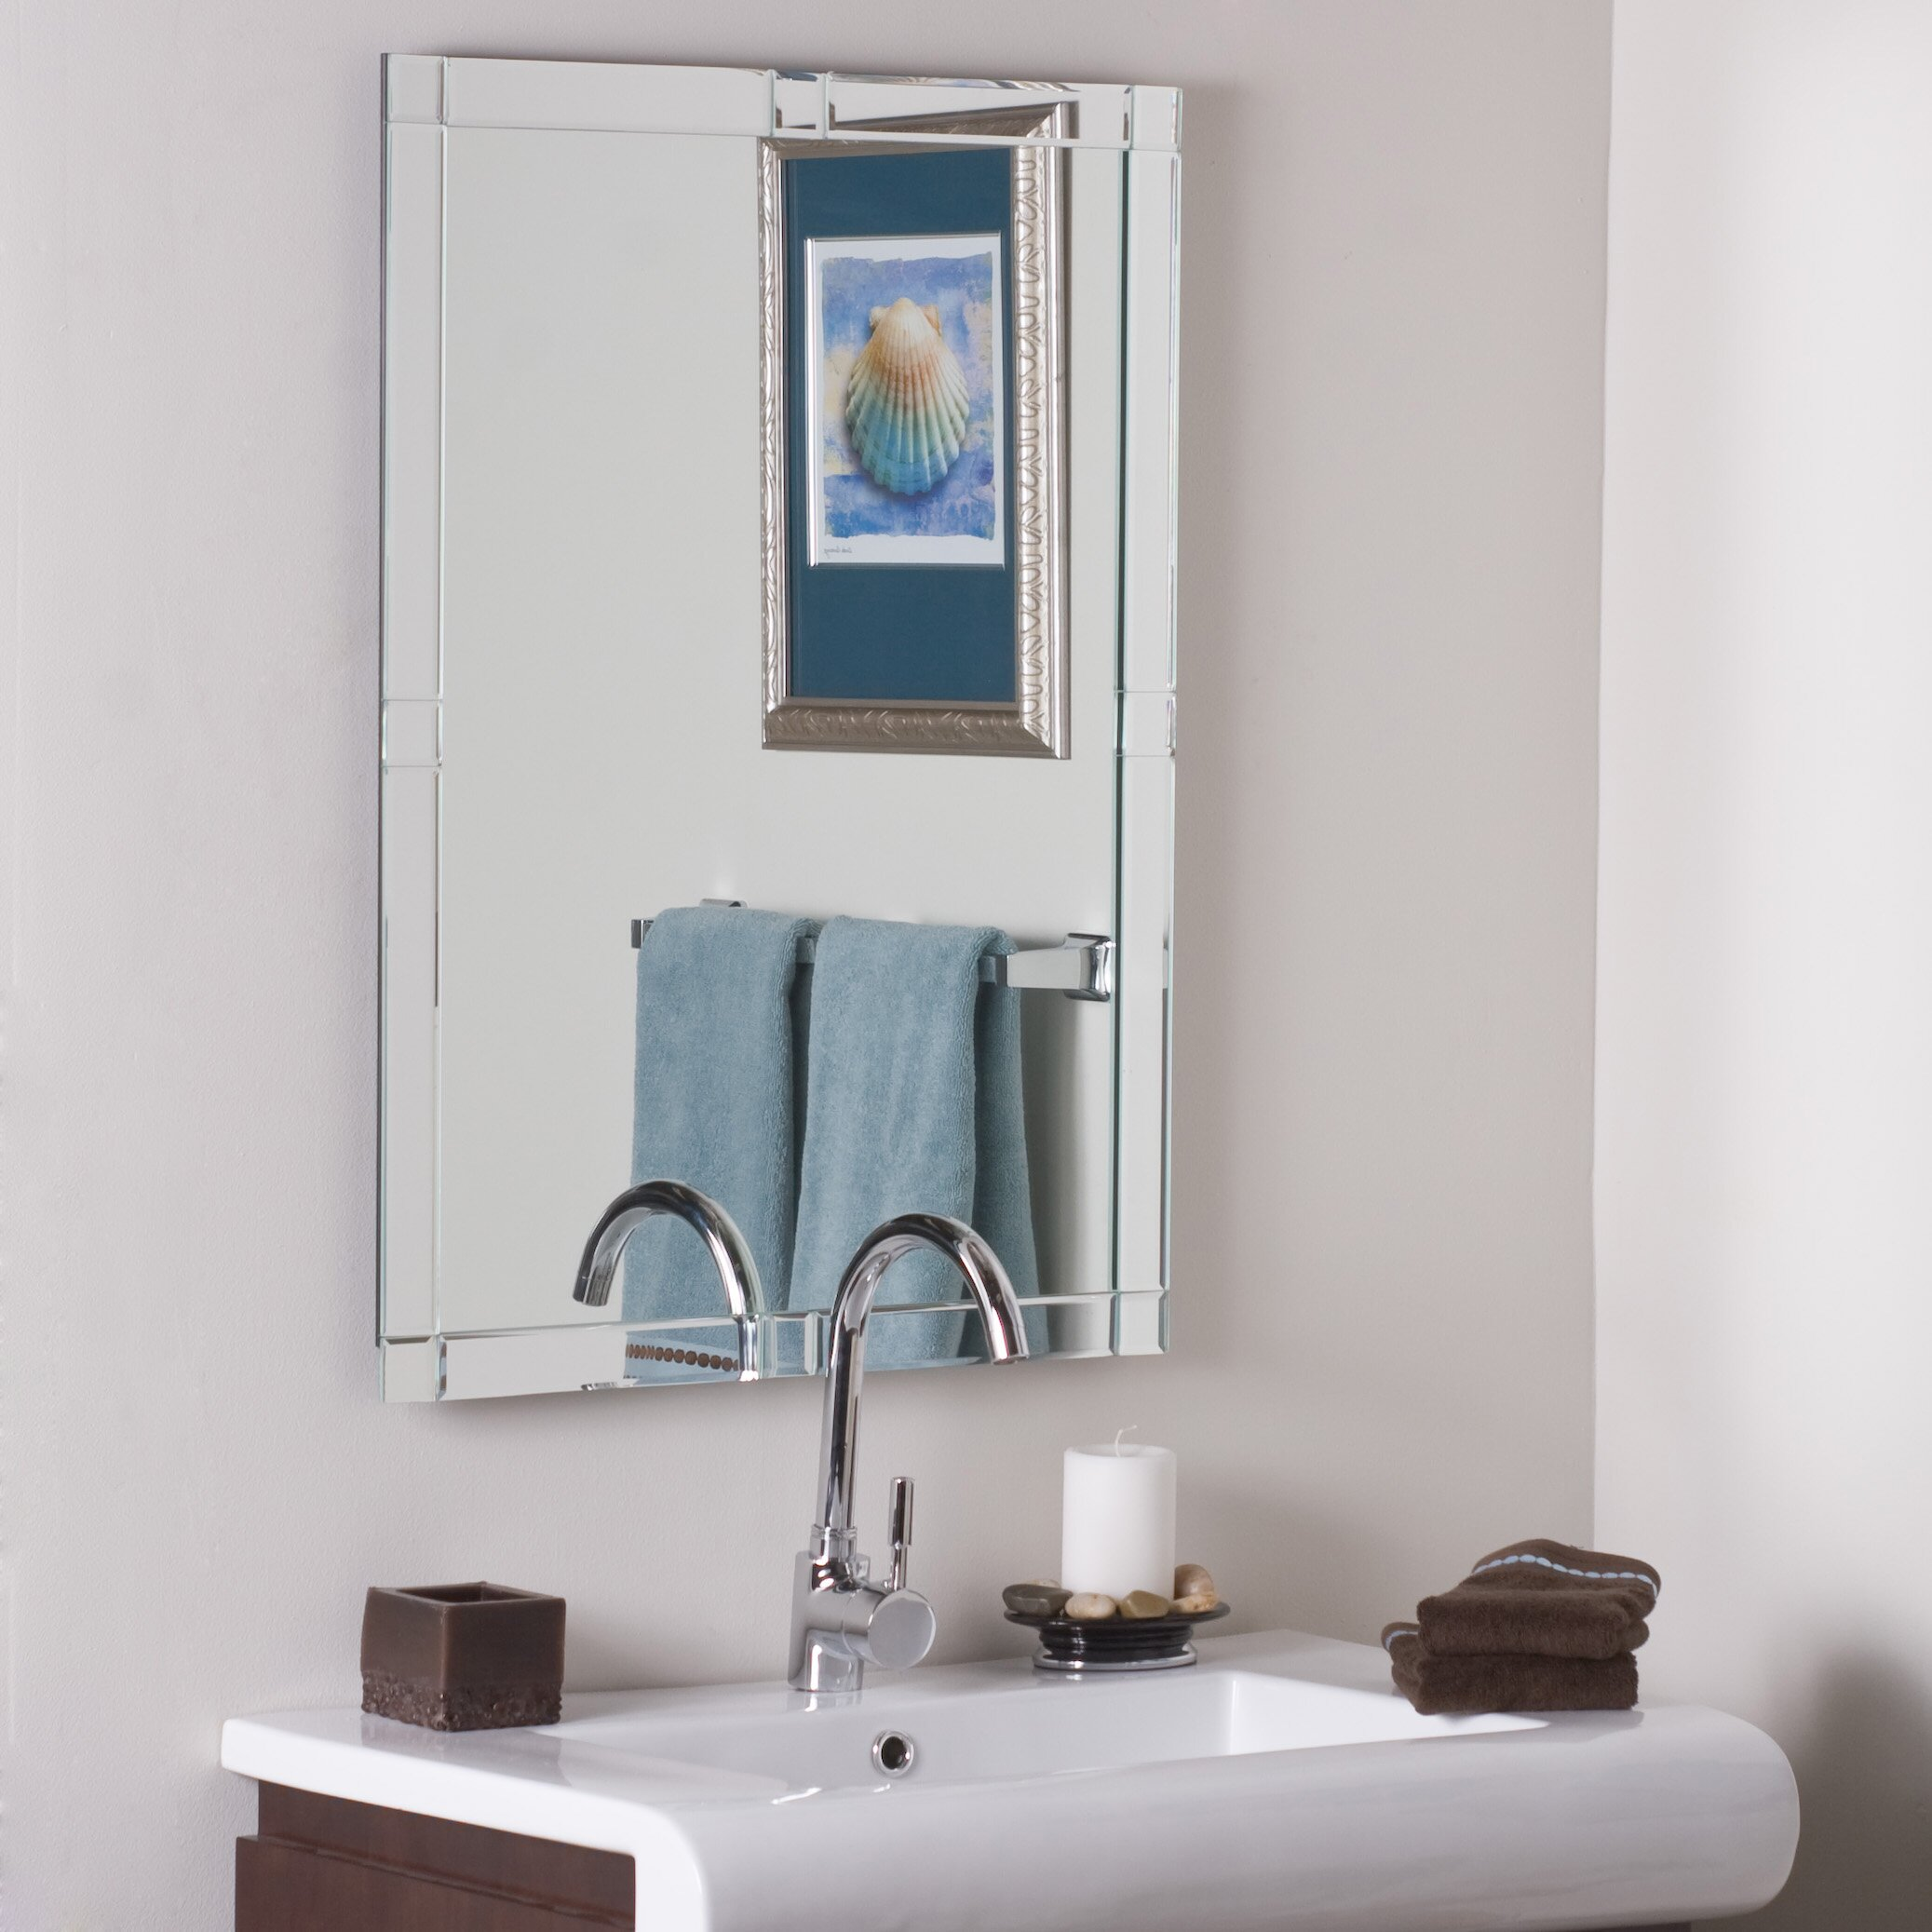 Wade logan mcfarland frameless wall mirror reviews wayfair for Frameless wall mirror